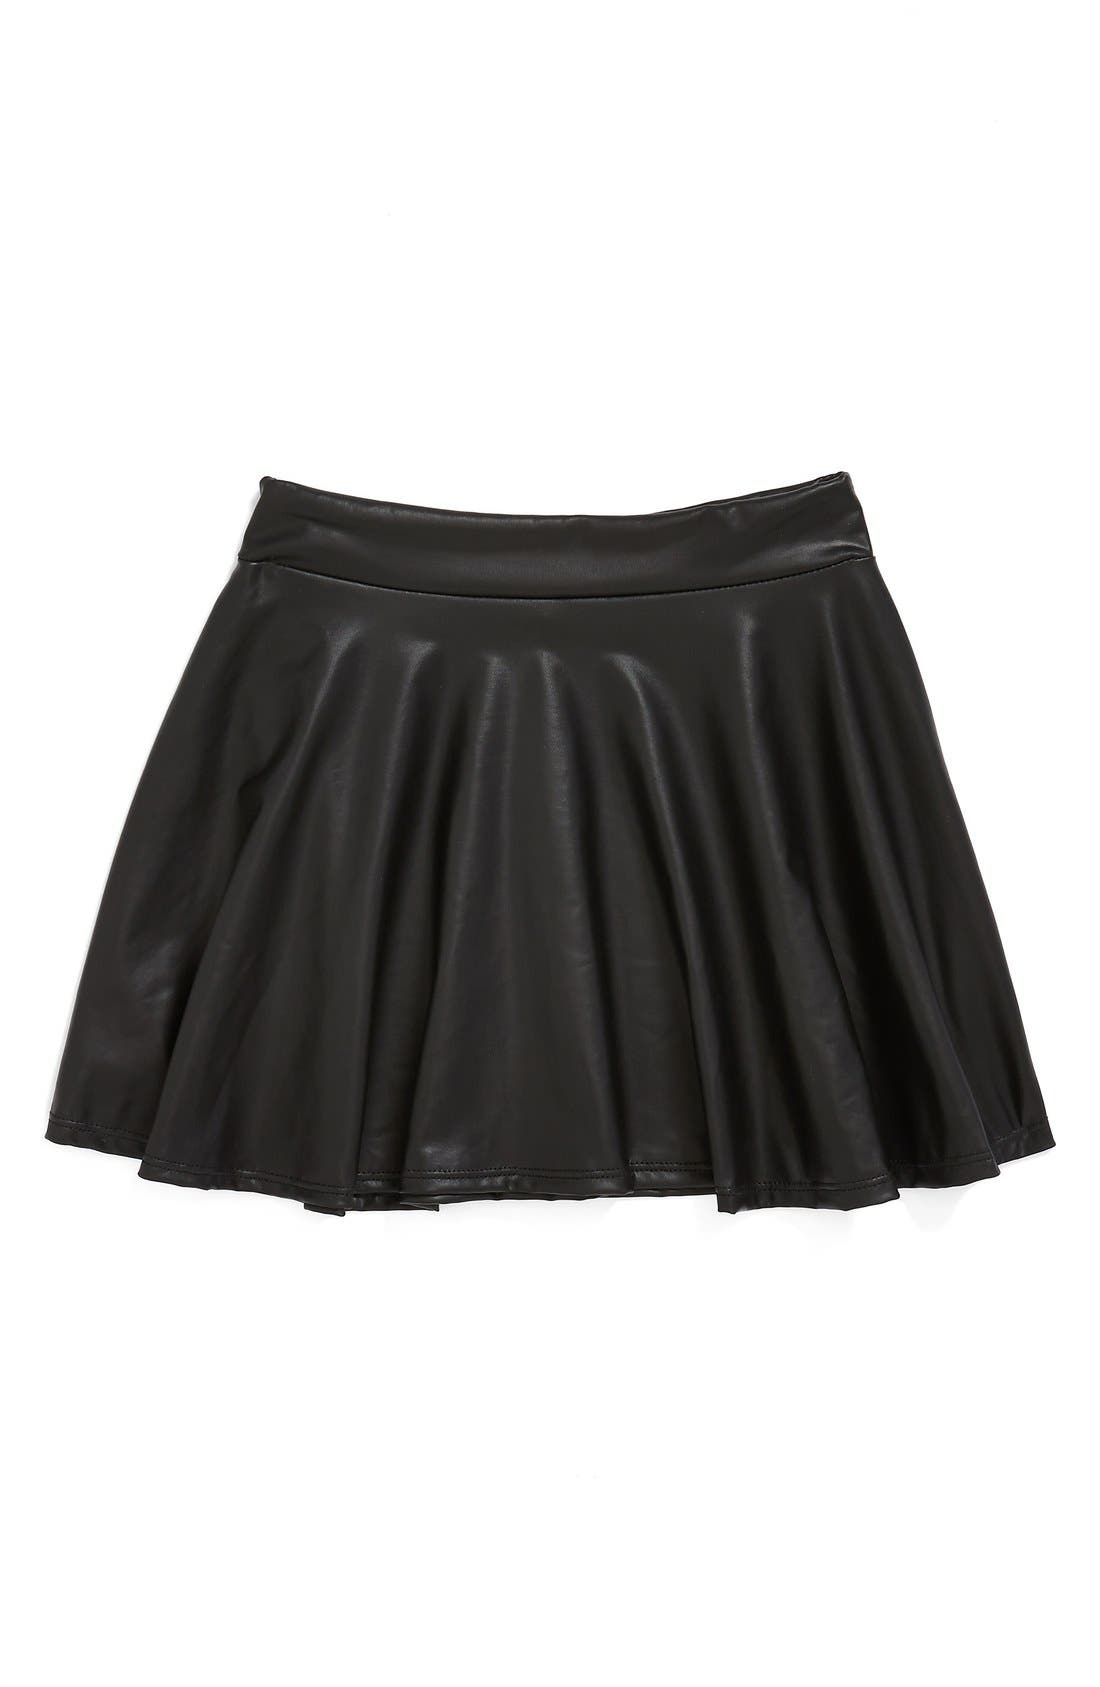 Alternate Image 1 Selected - Flowers by Zoe Faux Leather Pleated Skirt (Big Girls) (Online Only)